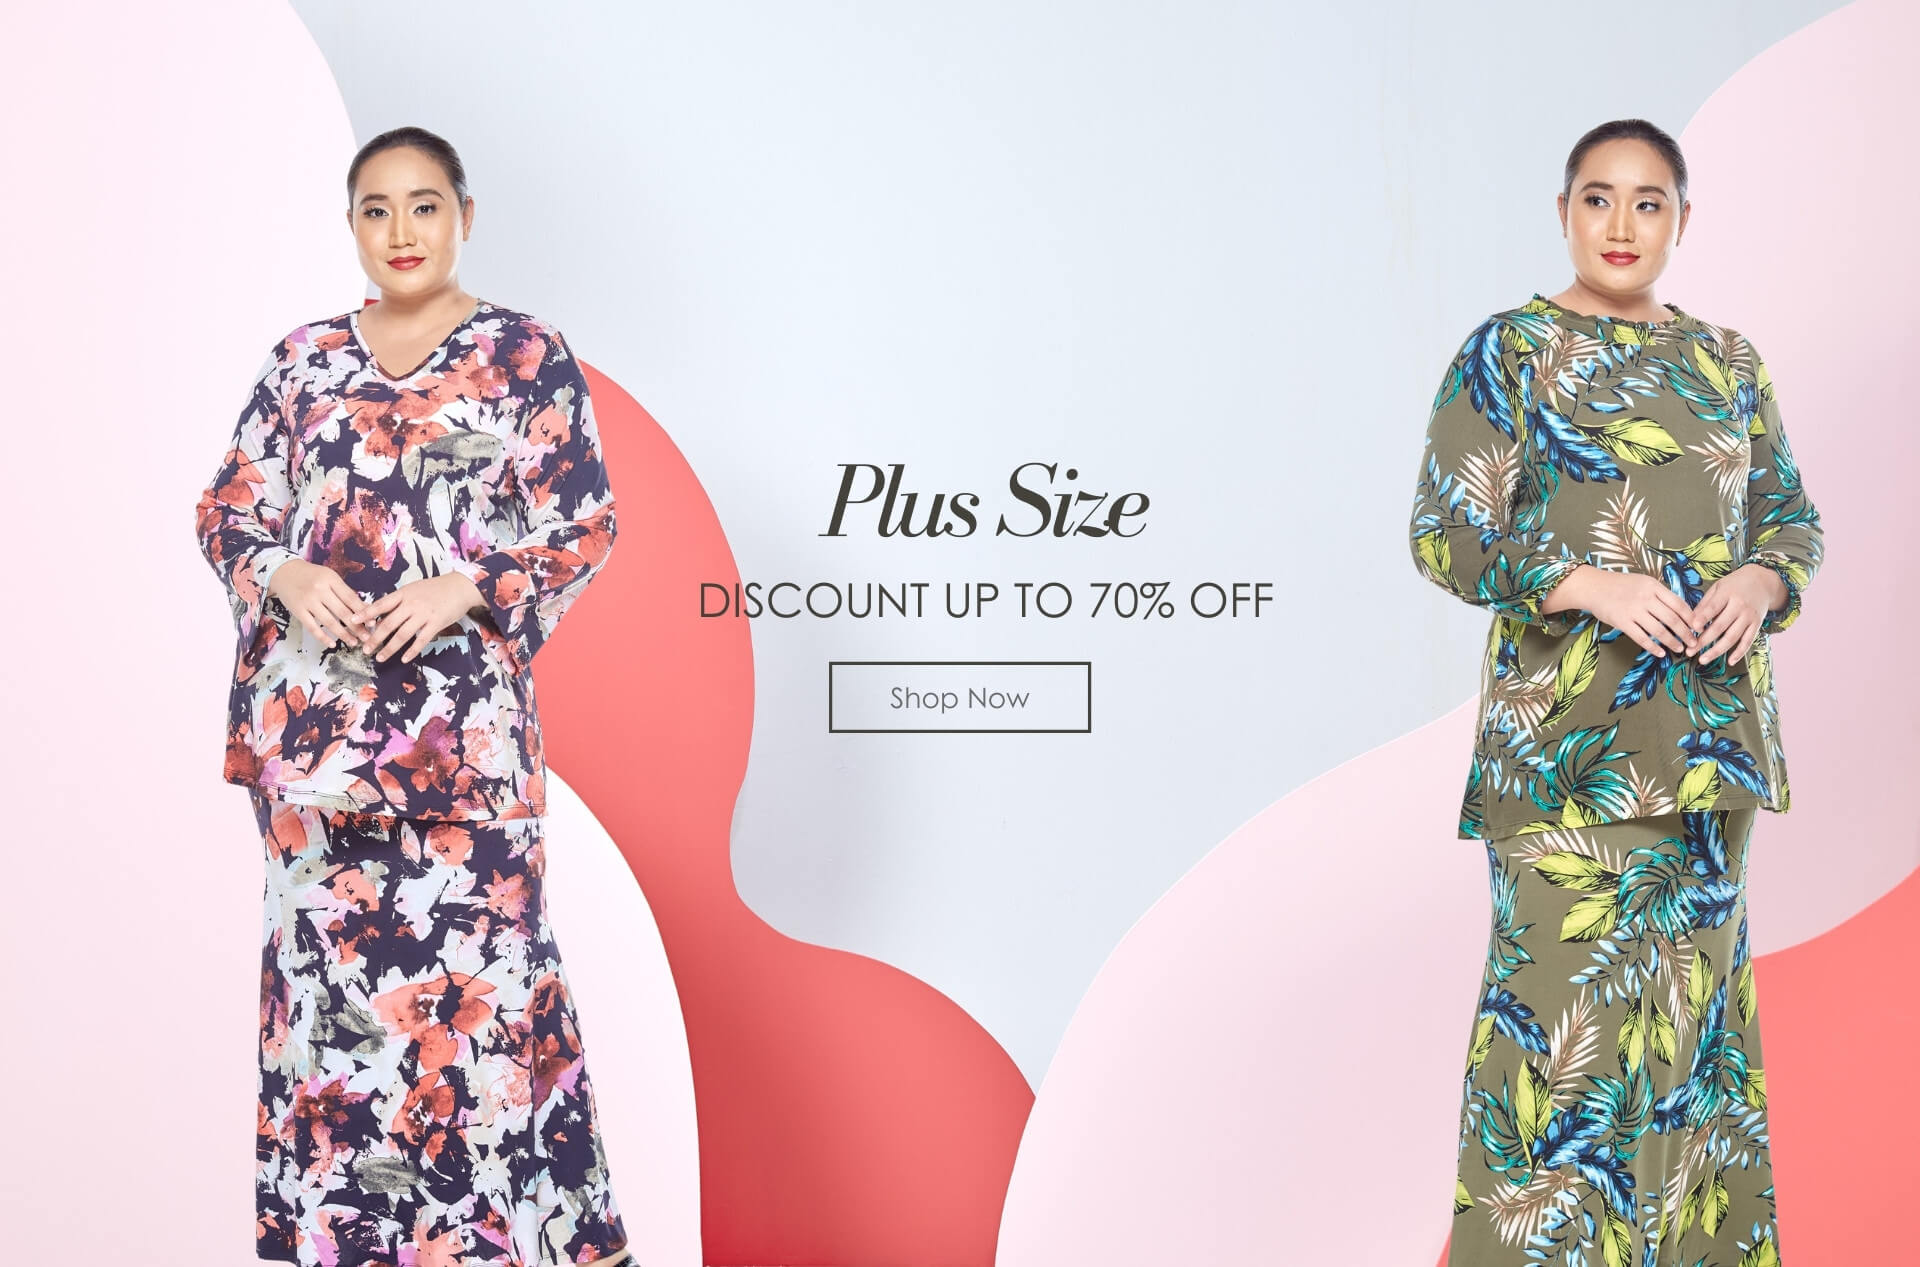 Plus Size banner Oct 2021